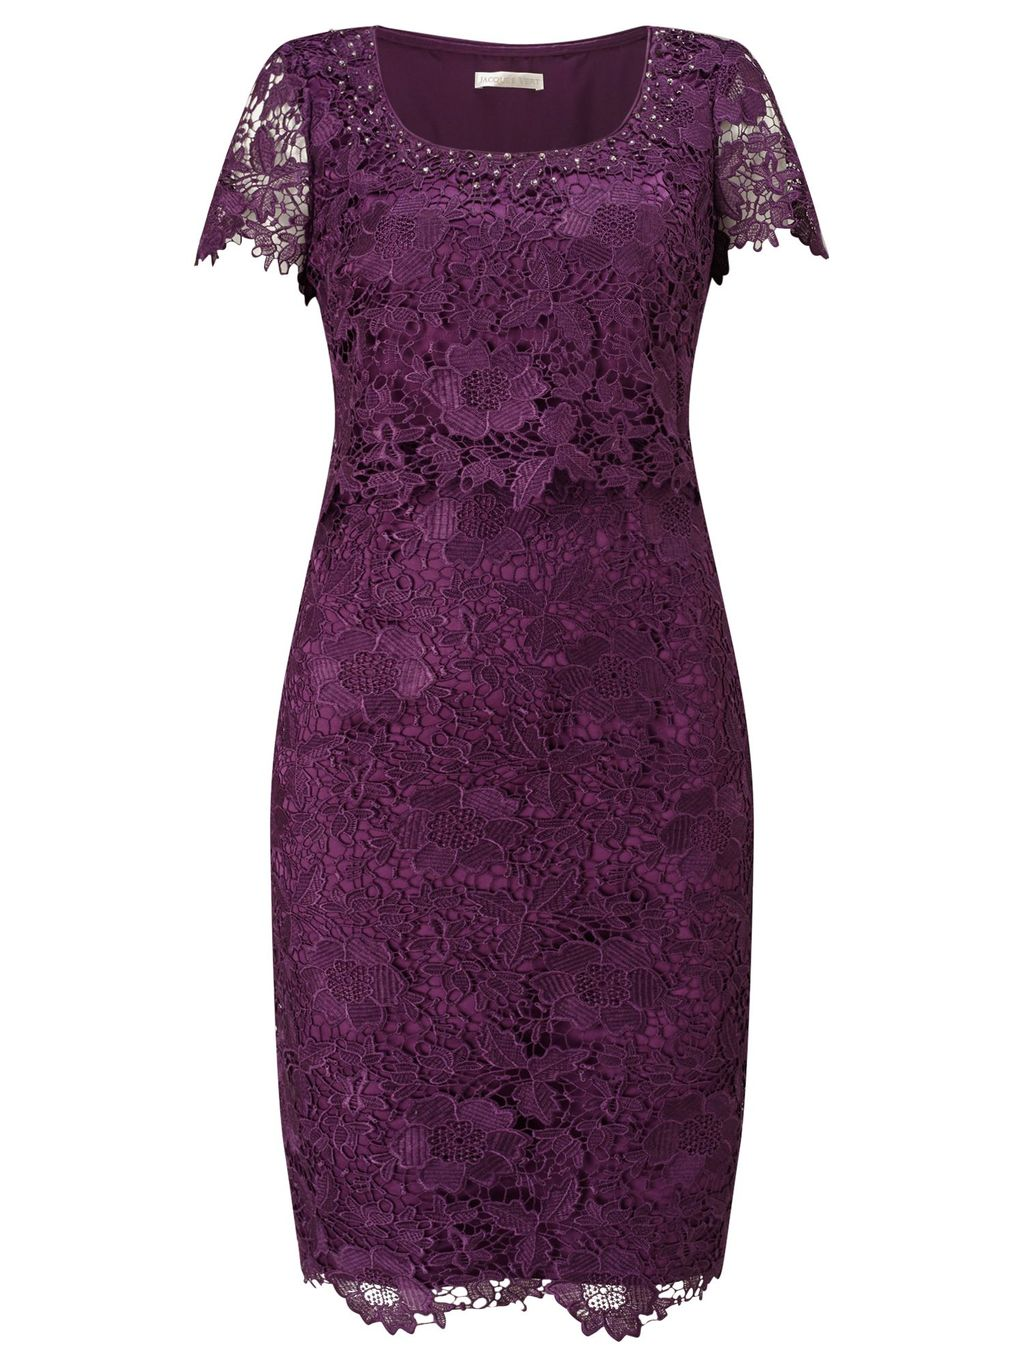 Opulent Lace Dress, Purple - style: shift; predominant colour: aubergine; occasions: evening, occasion; length: on the knee; fit: body skimming; neckline: scoop; fibres: polyester/polyamide - 100%; sleeve length: short sleeve; sleeve style: standard; texture group: lace; pattern type: fabric; pattern size: standard; pattern: patterned/print; season: s/s 2016; wardrobe: event